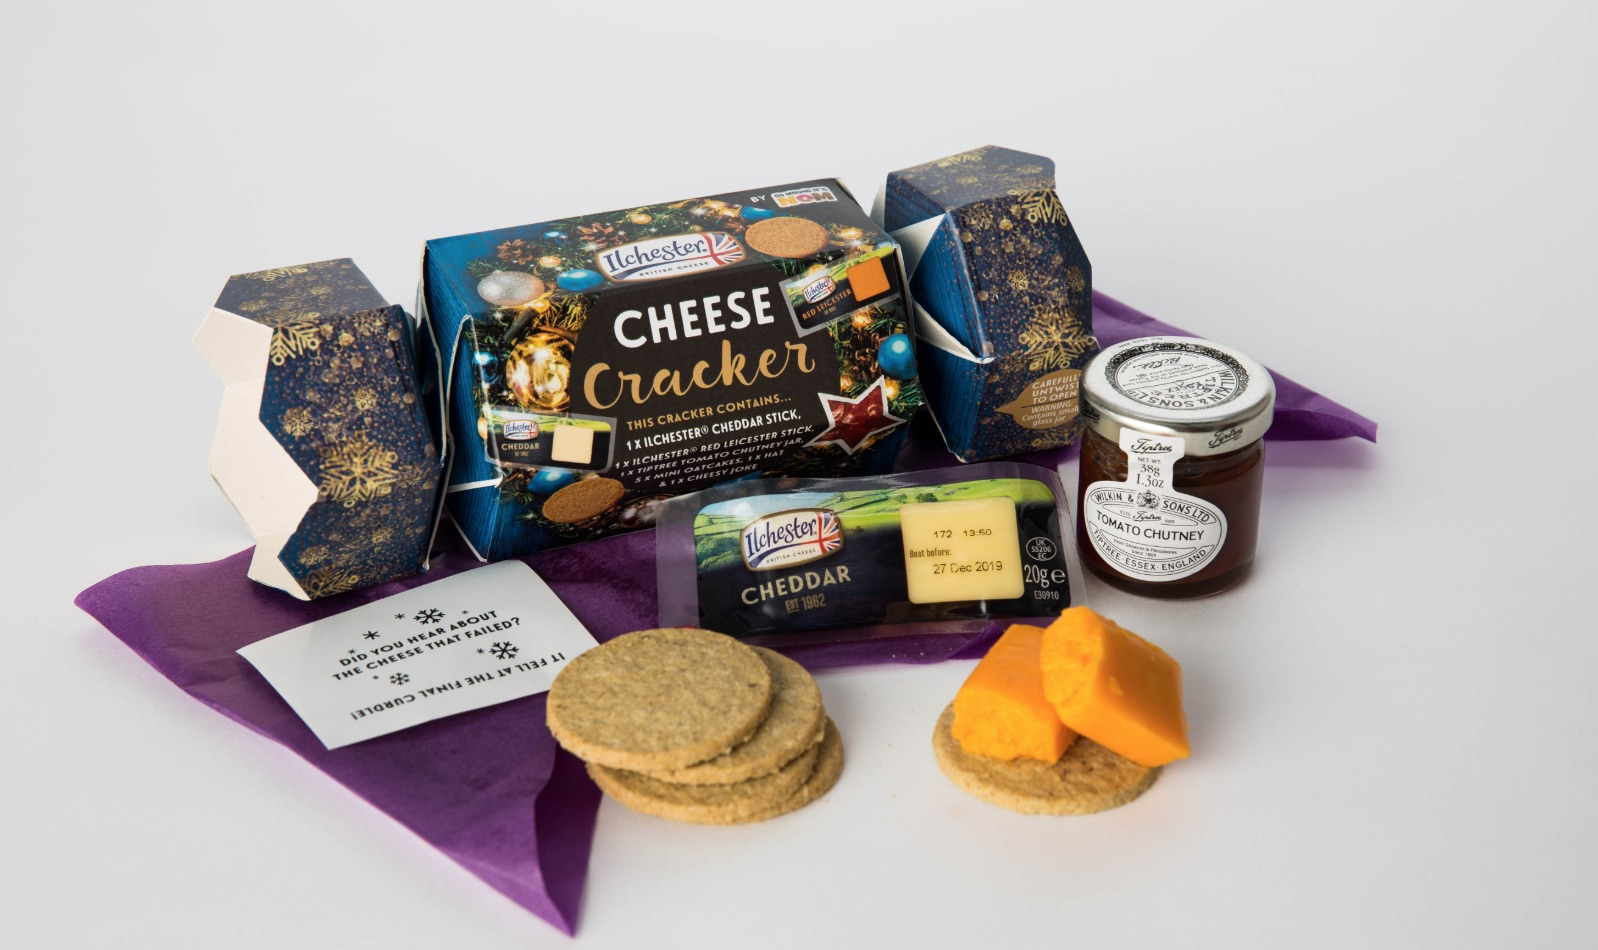 The world's first cheese-filled Christmas cracker will hit shops in November